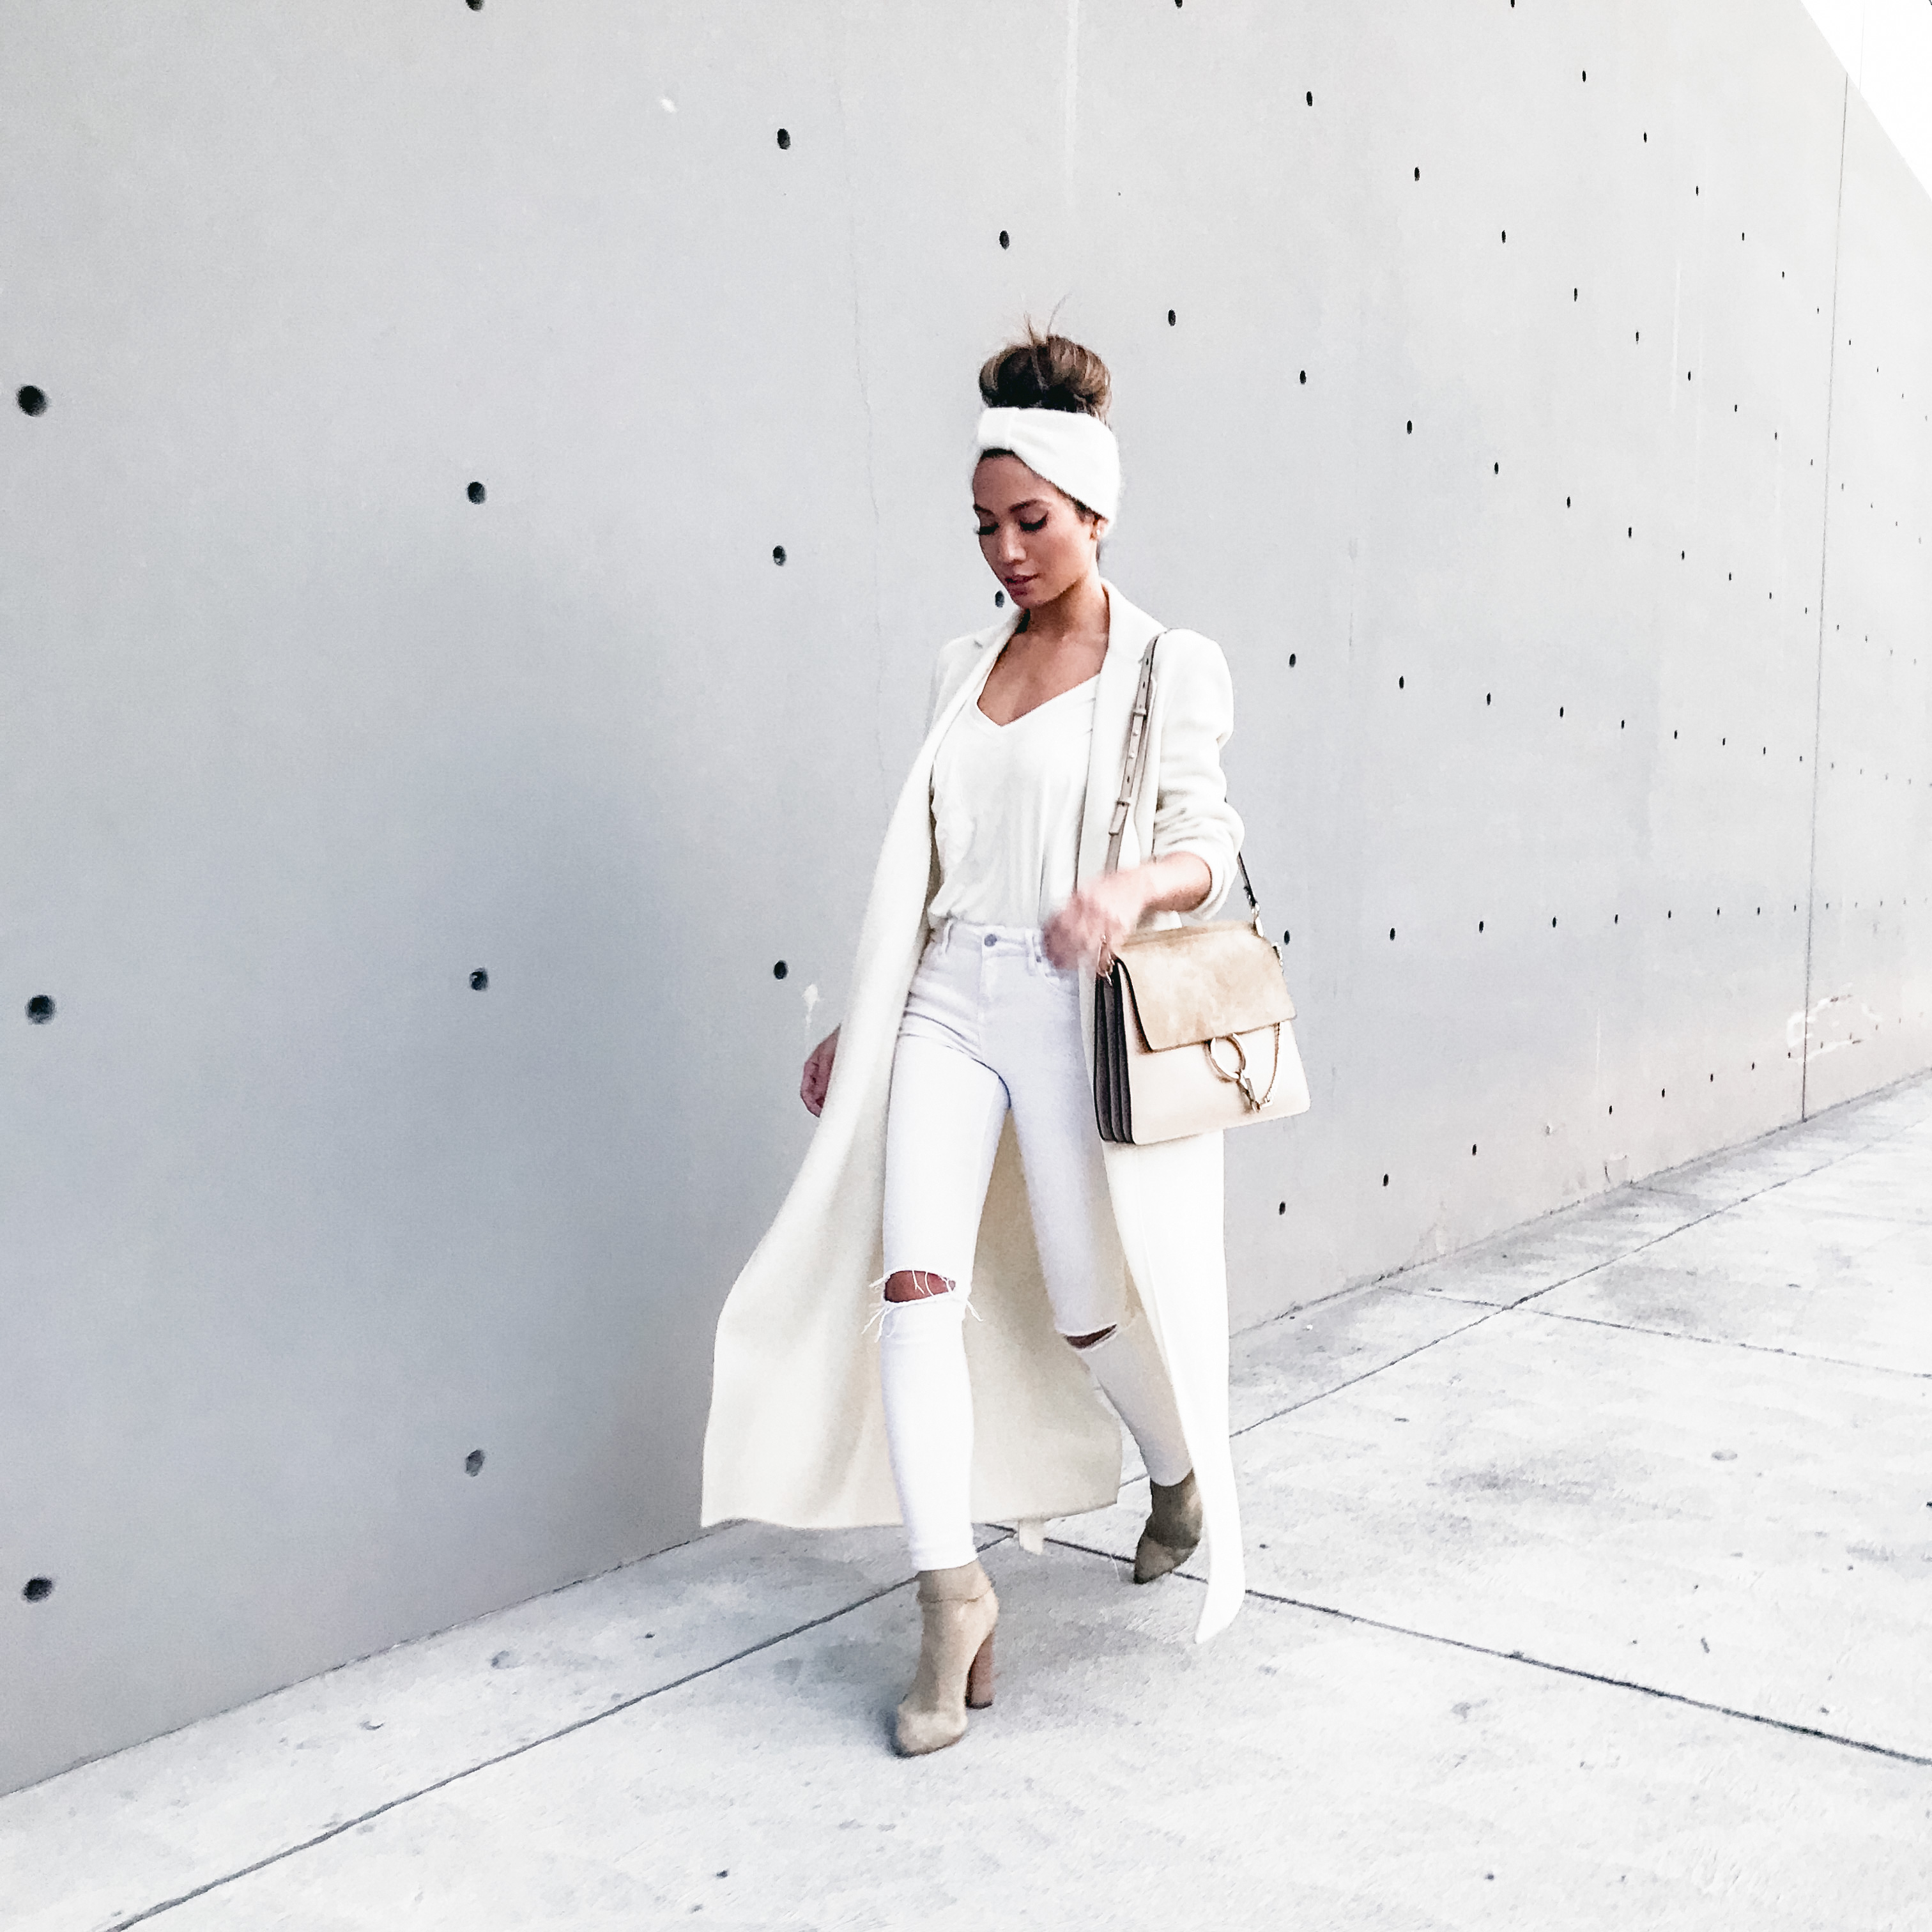 Jessi Malay wearing Winter Whites